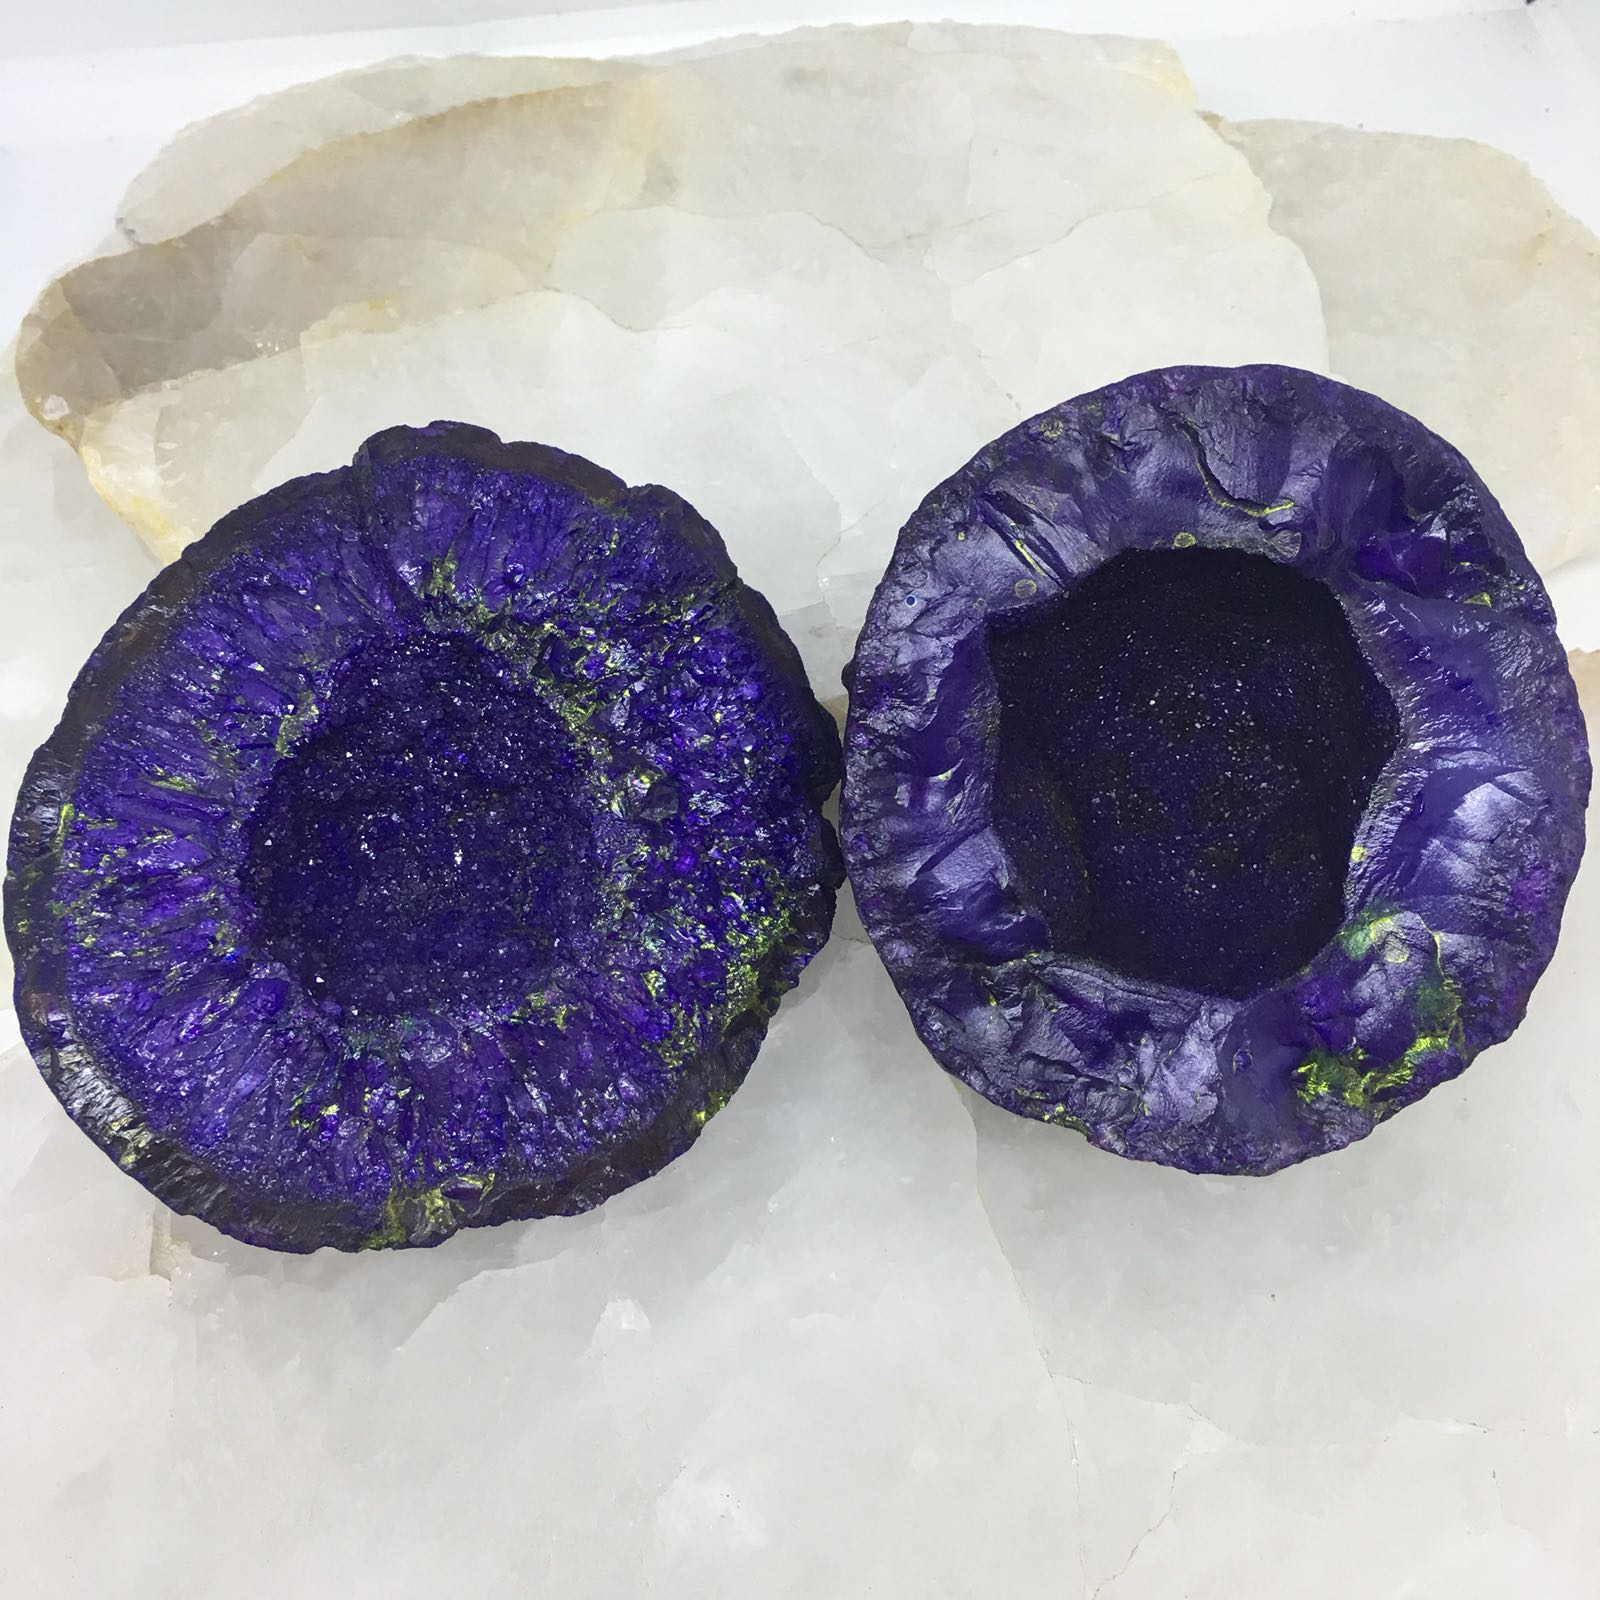 Stones from Uruguay - Purple Dyed Rough Agate Druzy for Decor Home